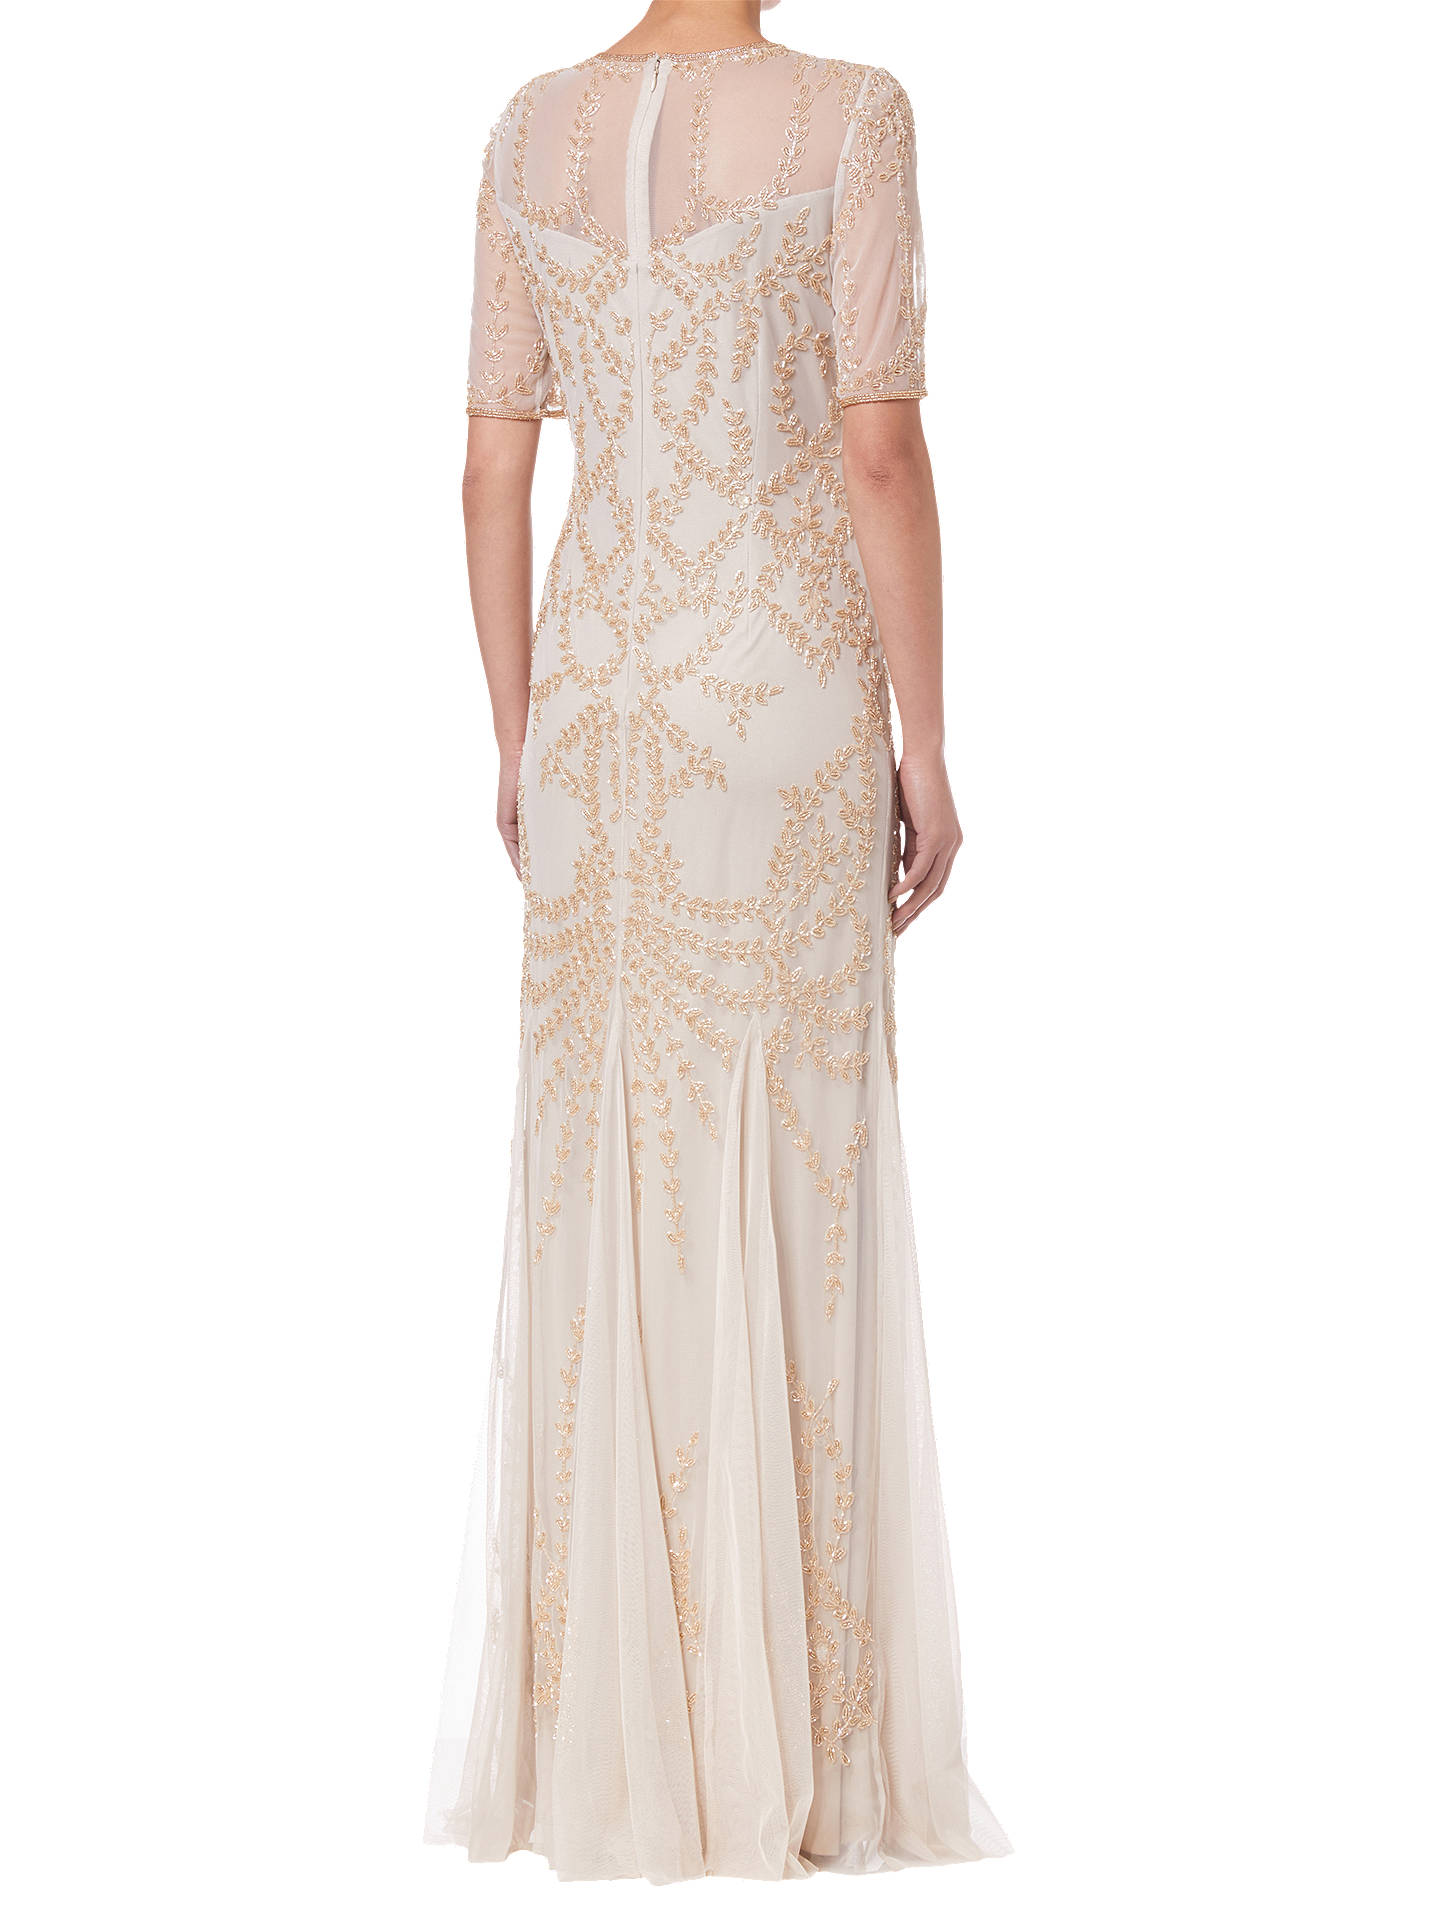 BuyAdrianna Papell Beaded Long Dress, Biscotti, Biscotti, 8 Online at johnlewis.com